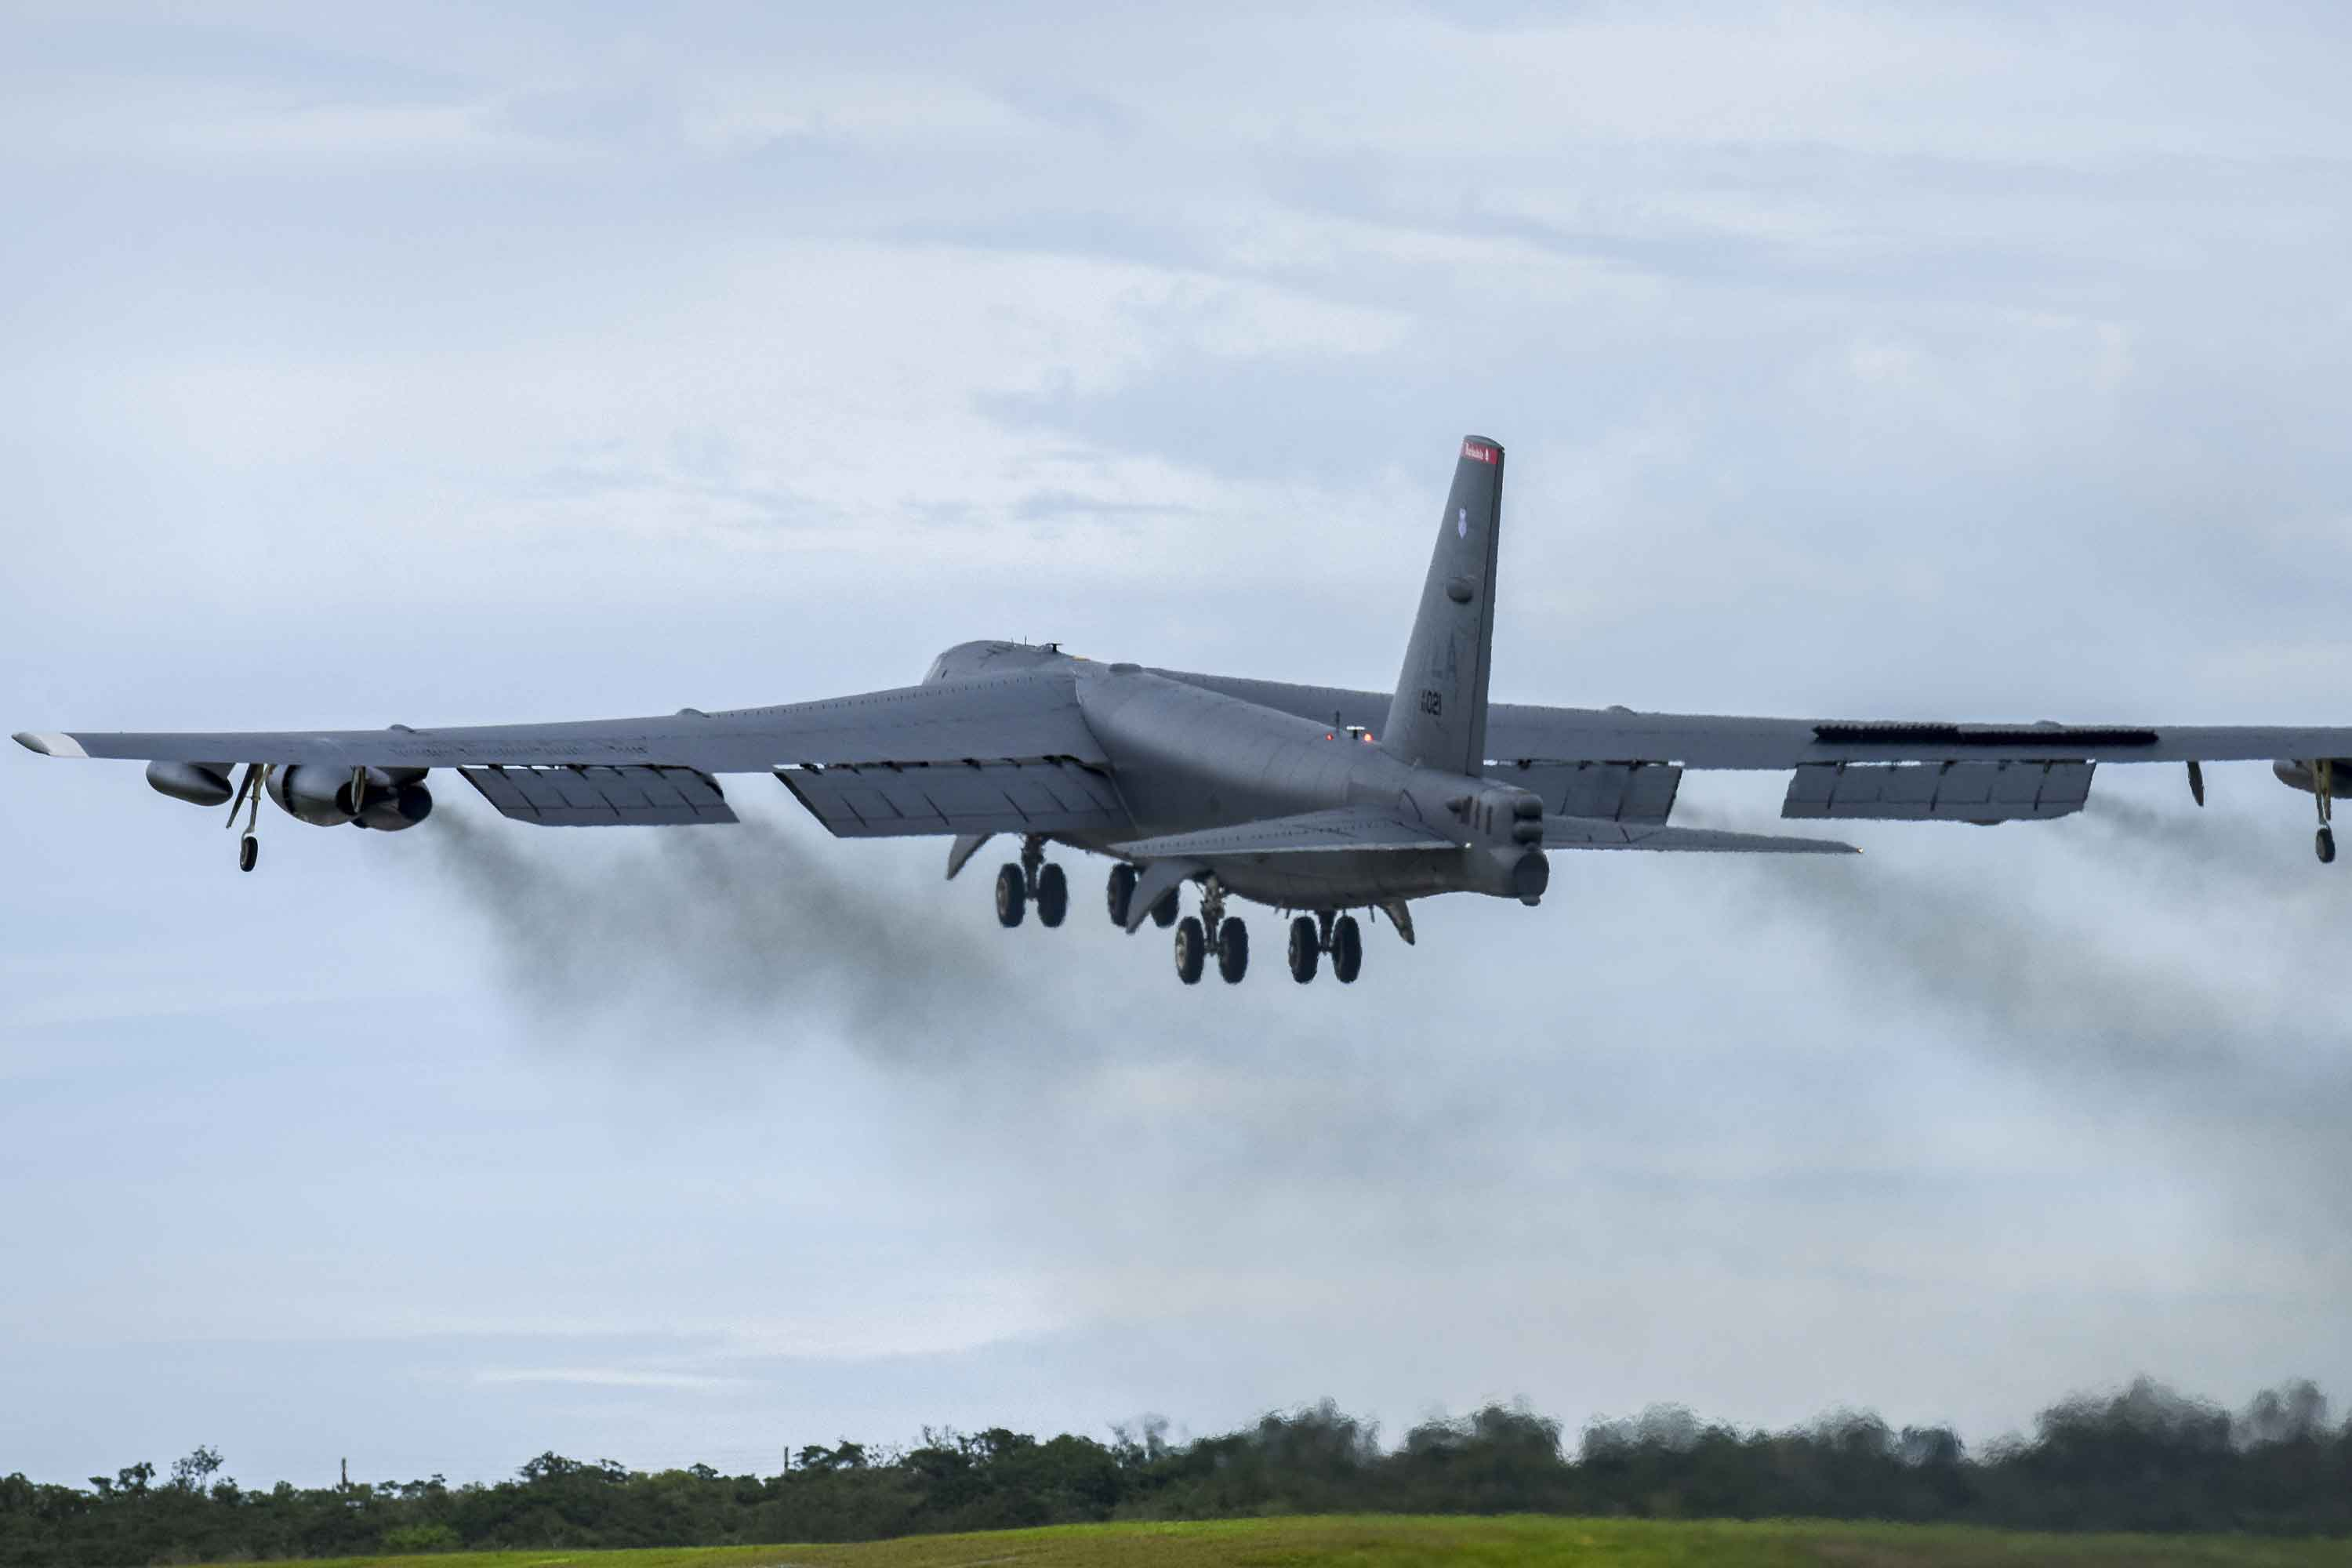 The B-52 Will No Longer Carry Certain Nuclear Weapons. Here's Why